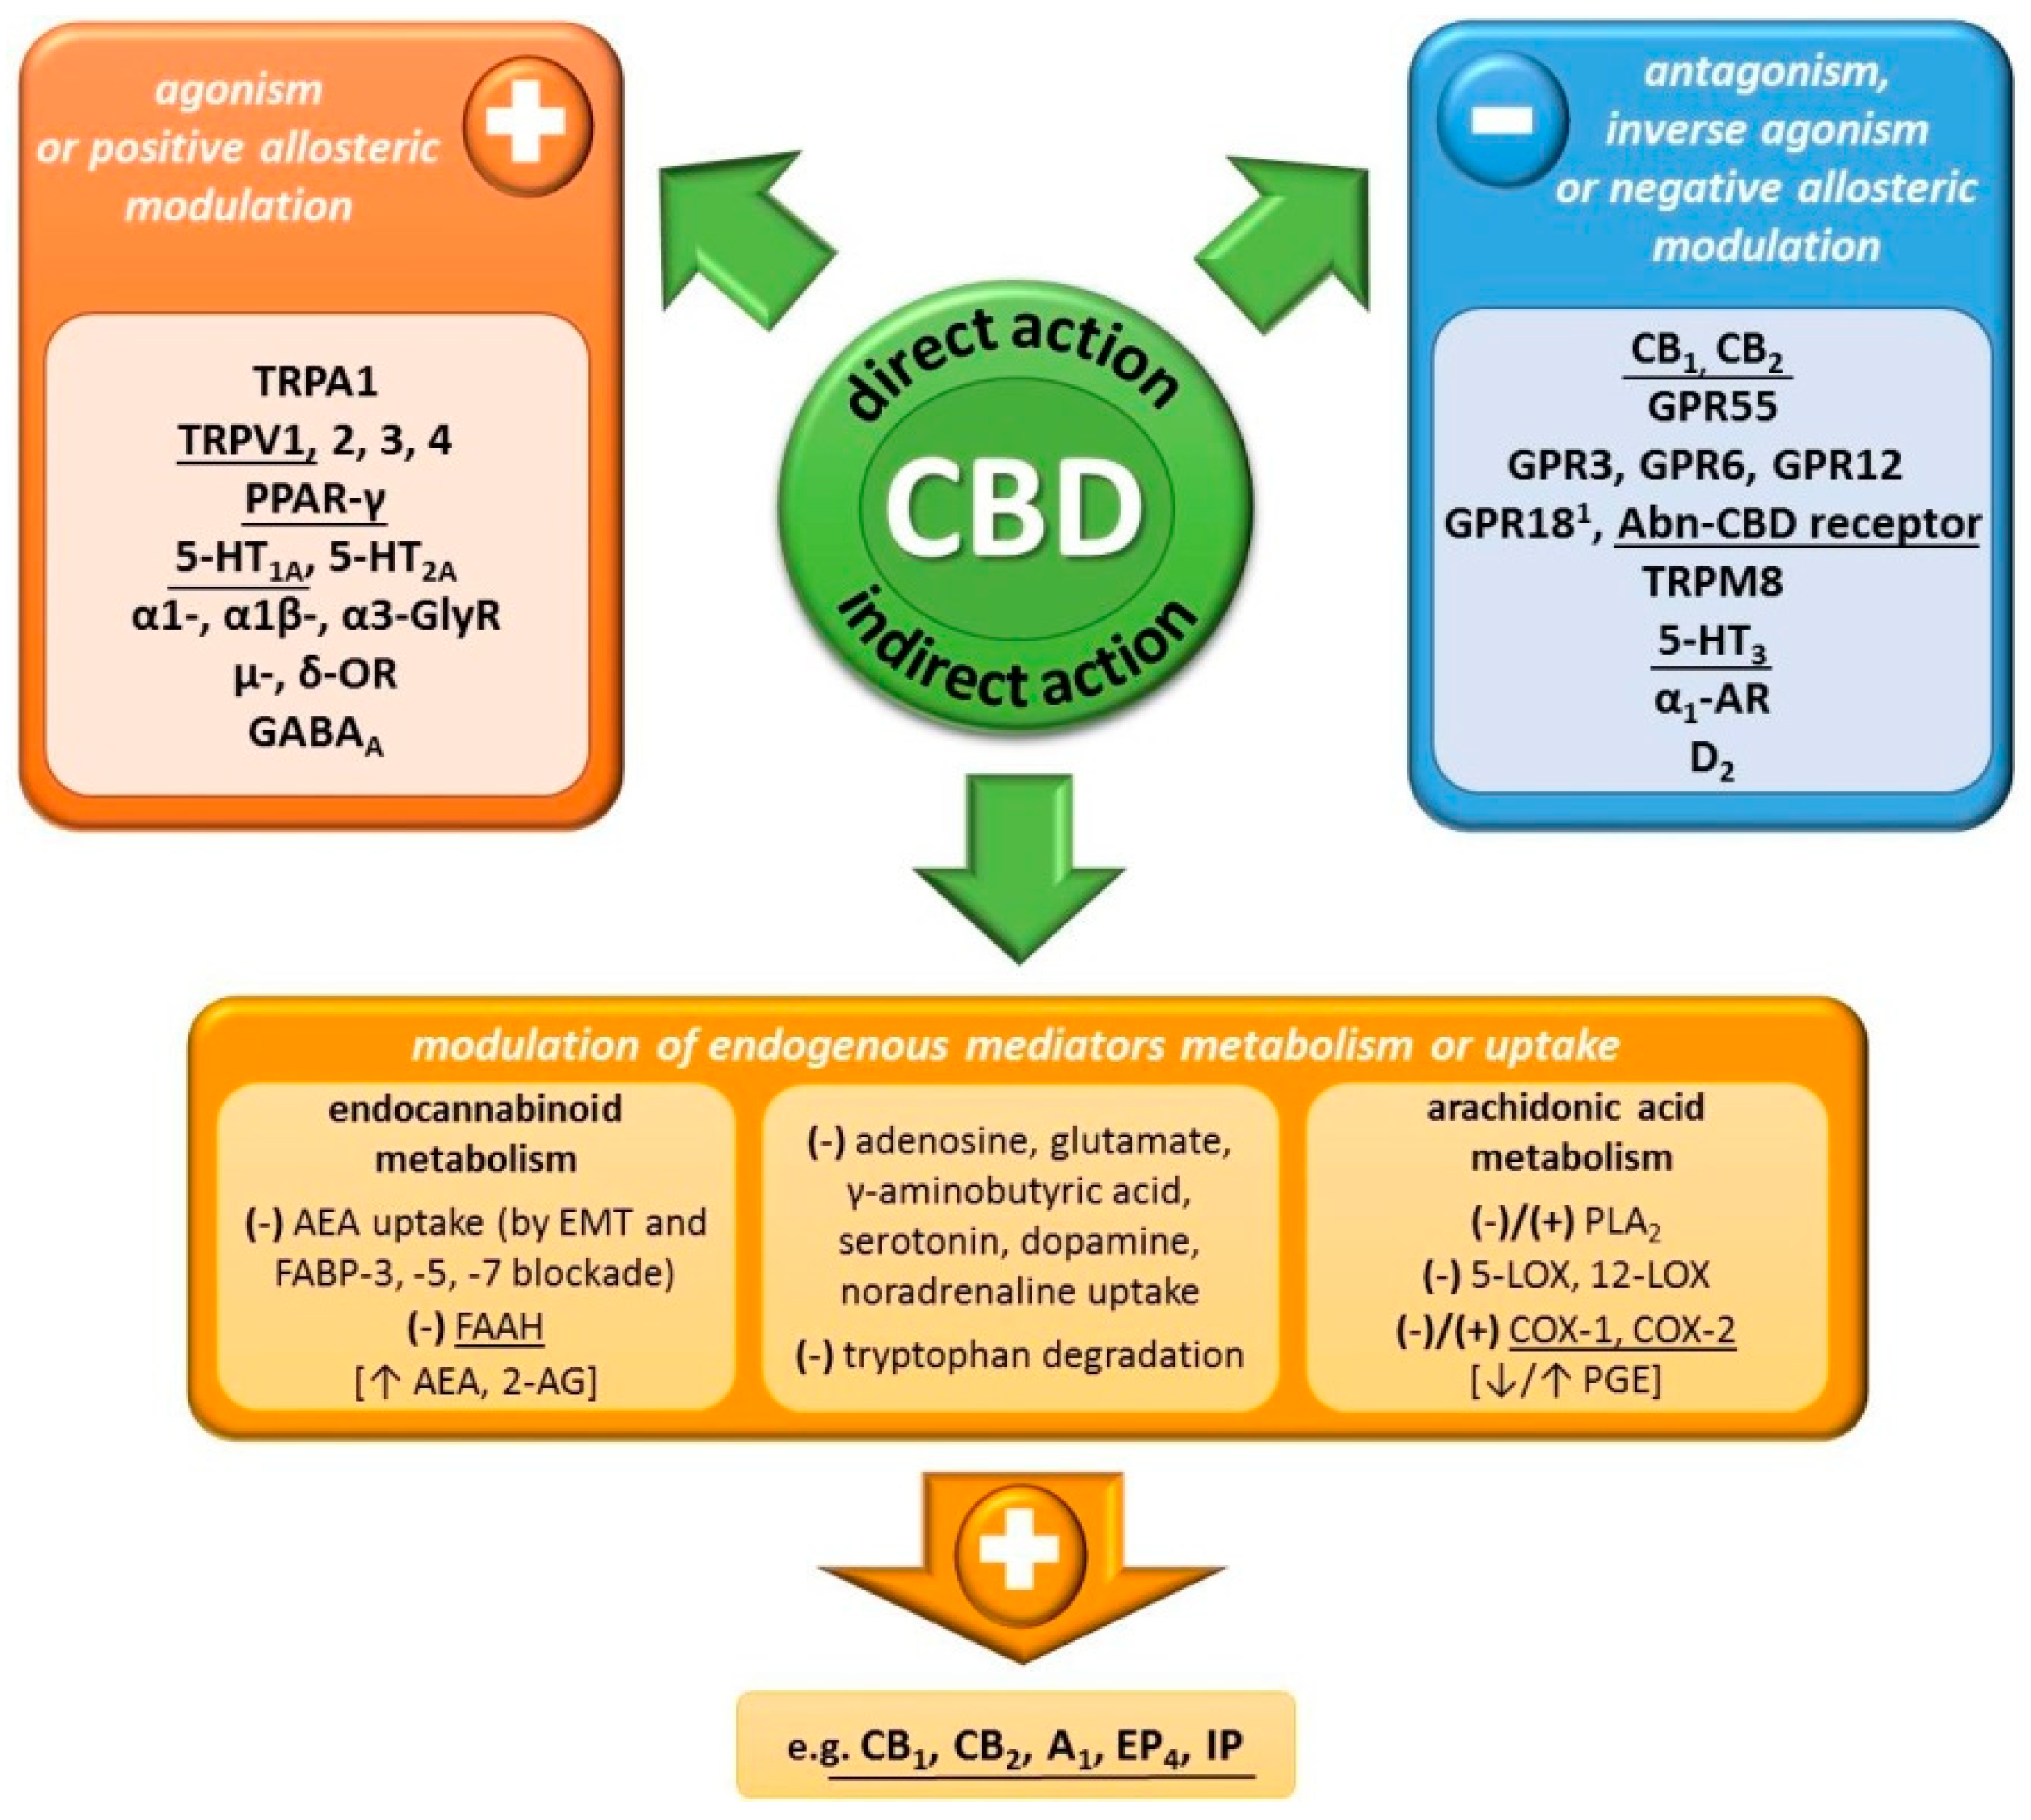 Ijms Free Full Text The Effects Of Cannabidiol A Non Intoxicating Compound Of Cannabis On The Cardiovascular System In Health And Disease Html